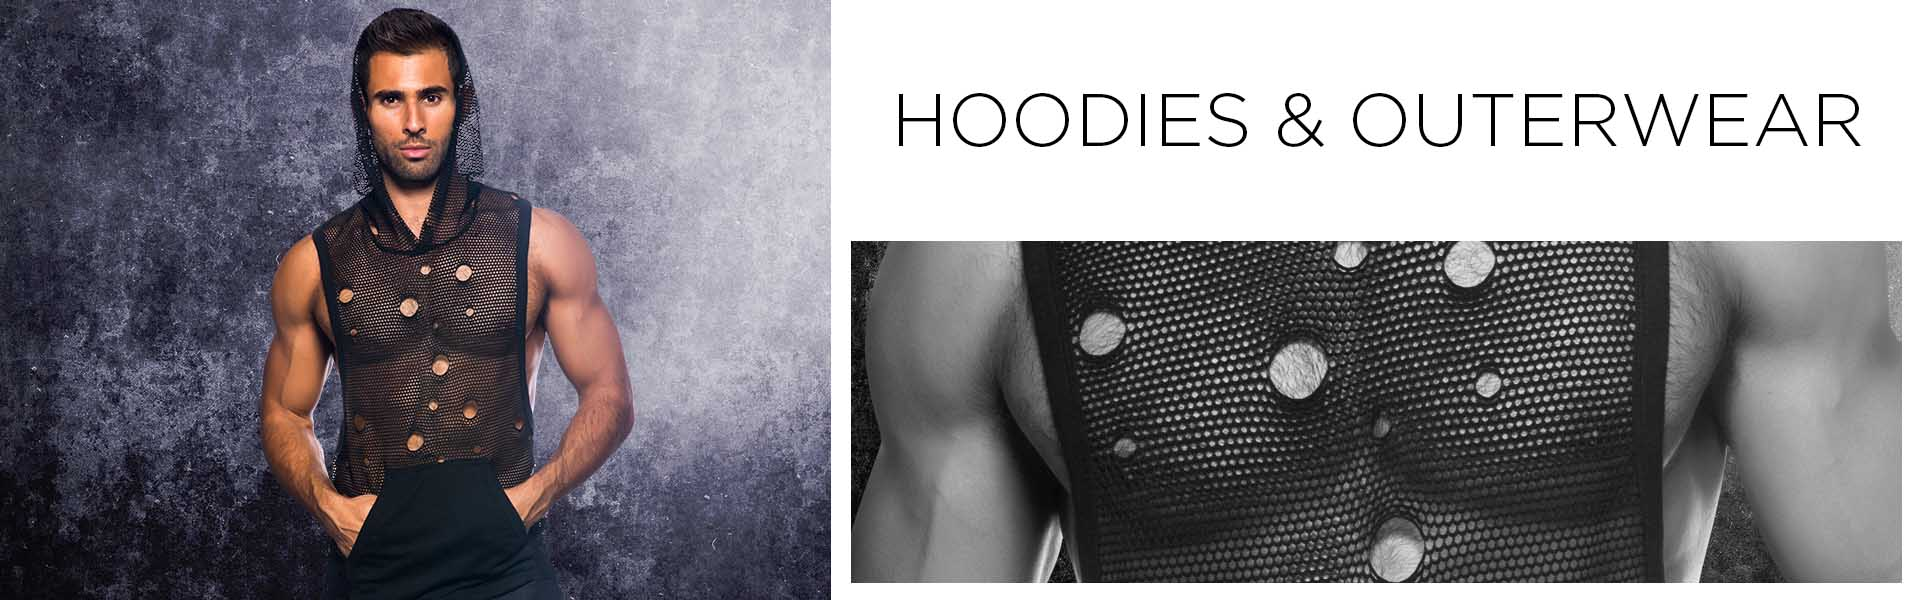 Hoodies & Outerwear